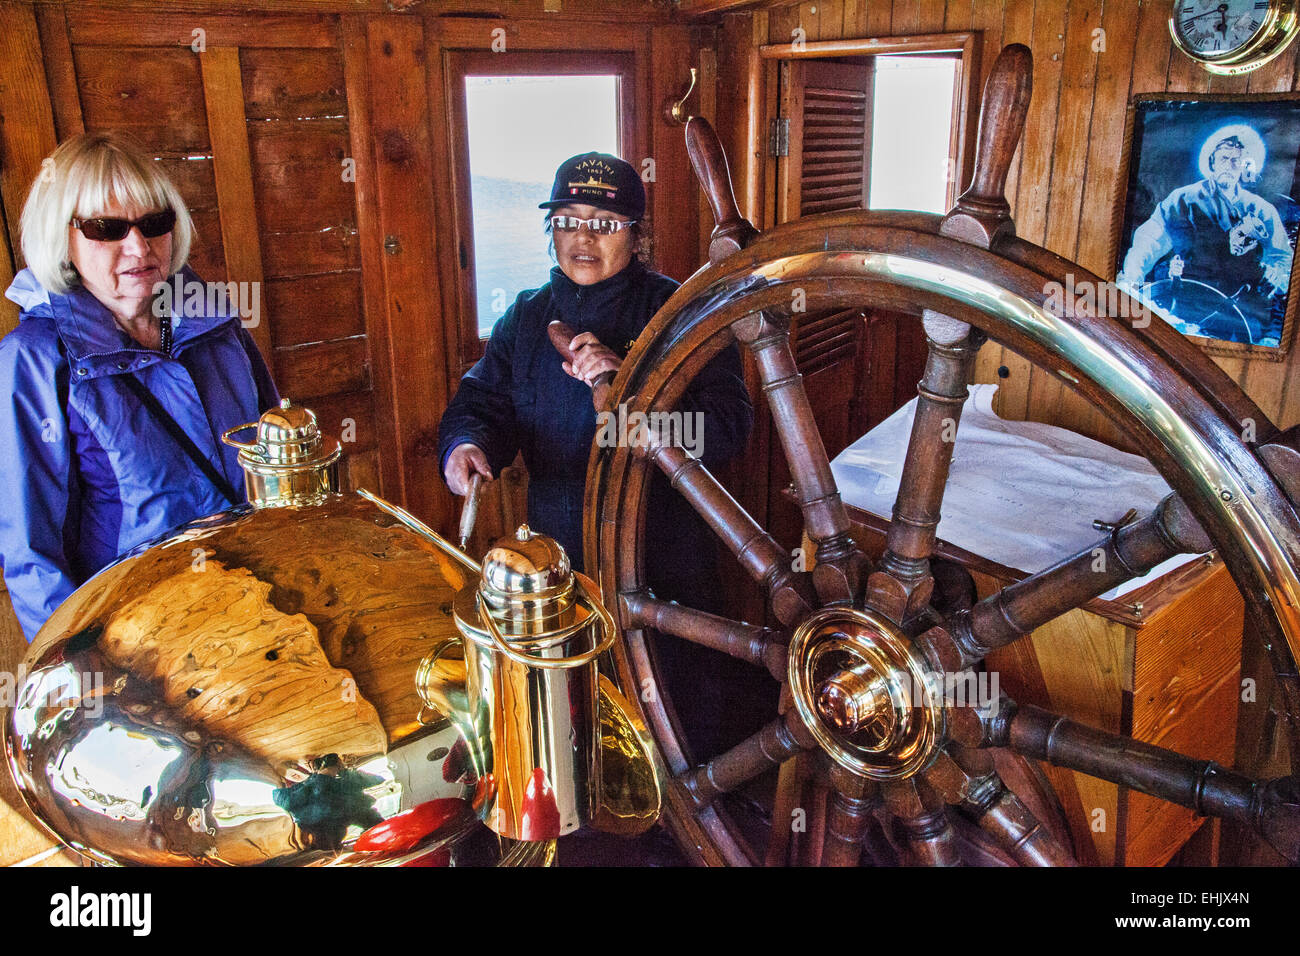 The M/V Yavari was a steam powered metal boat ordered by the Peruvian government in 1861 and launched in 1870. - Stock Image